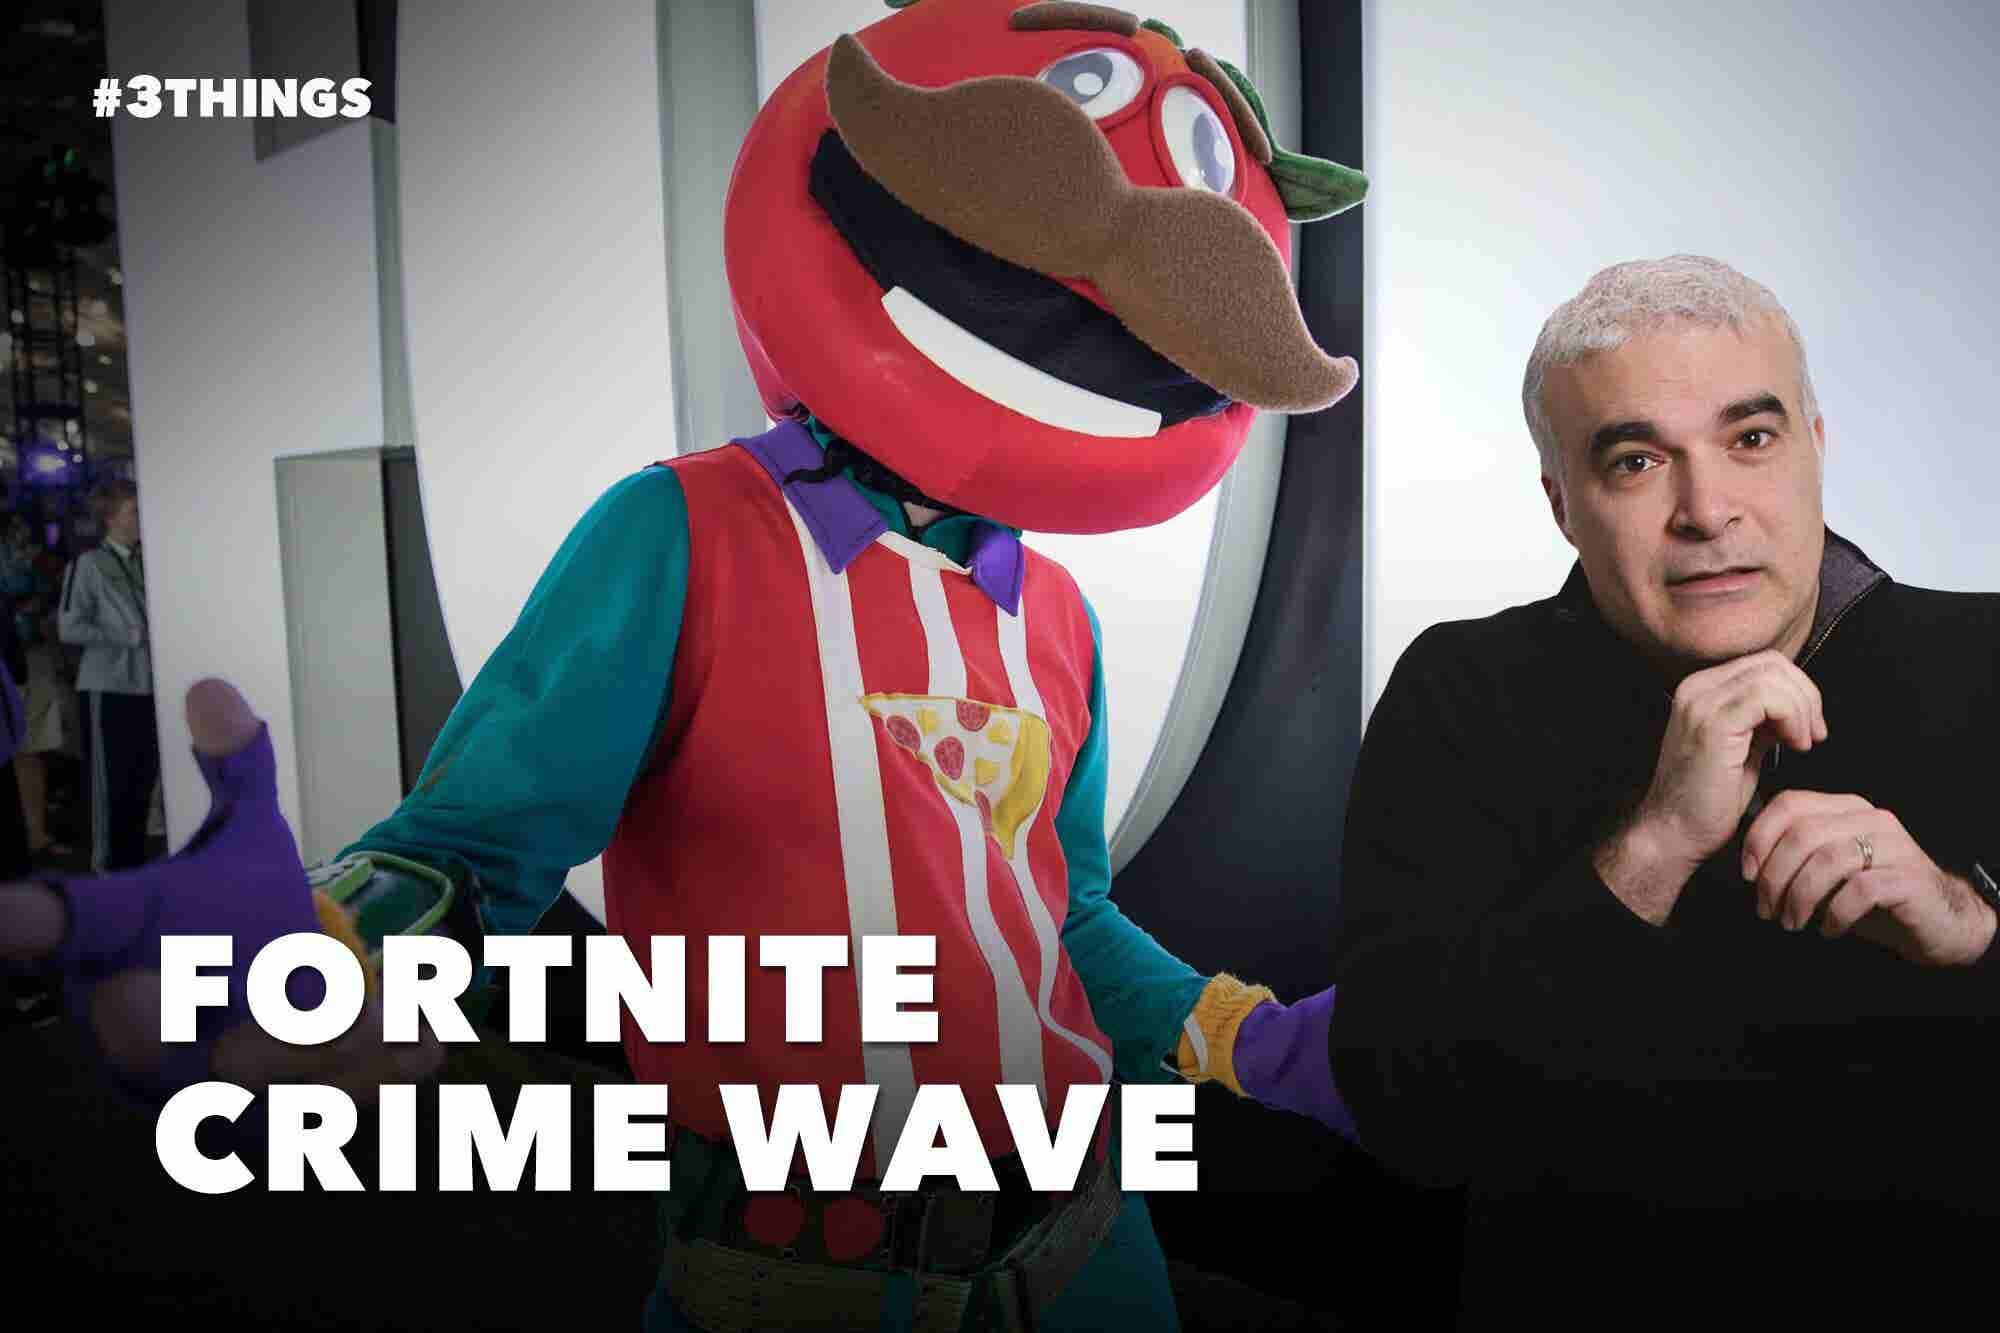 Fortnite's Real-Life Crime Wave (60-Second Video)